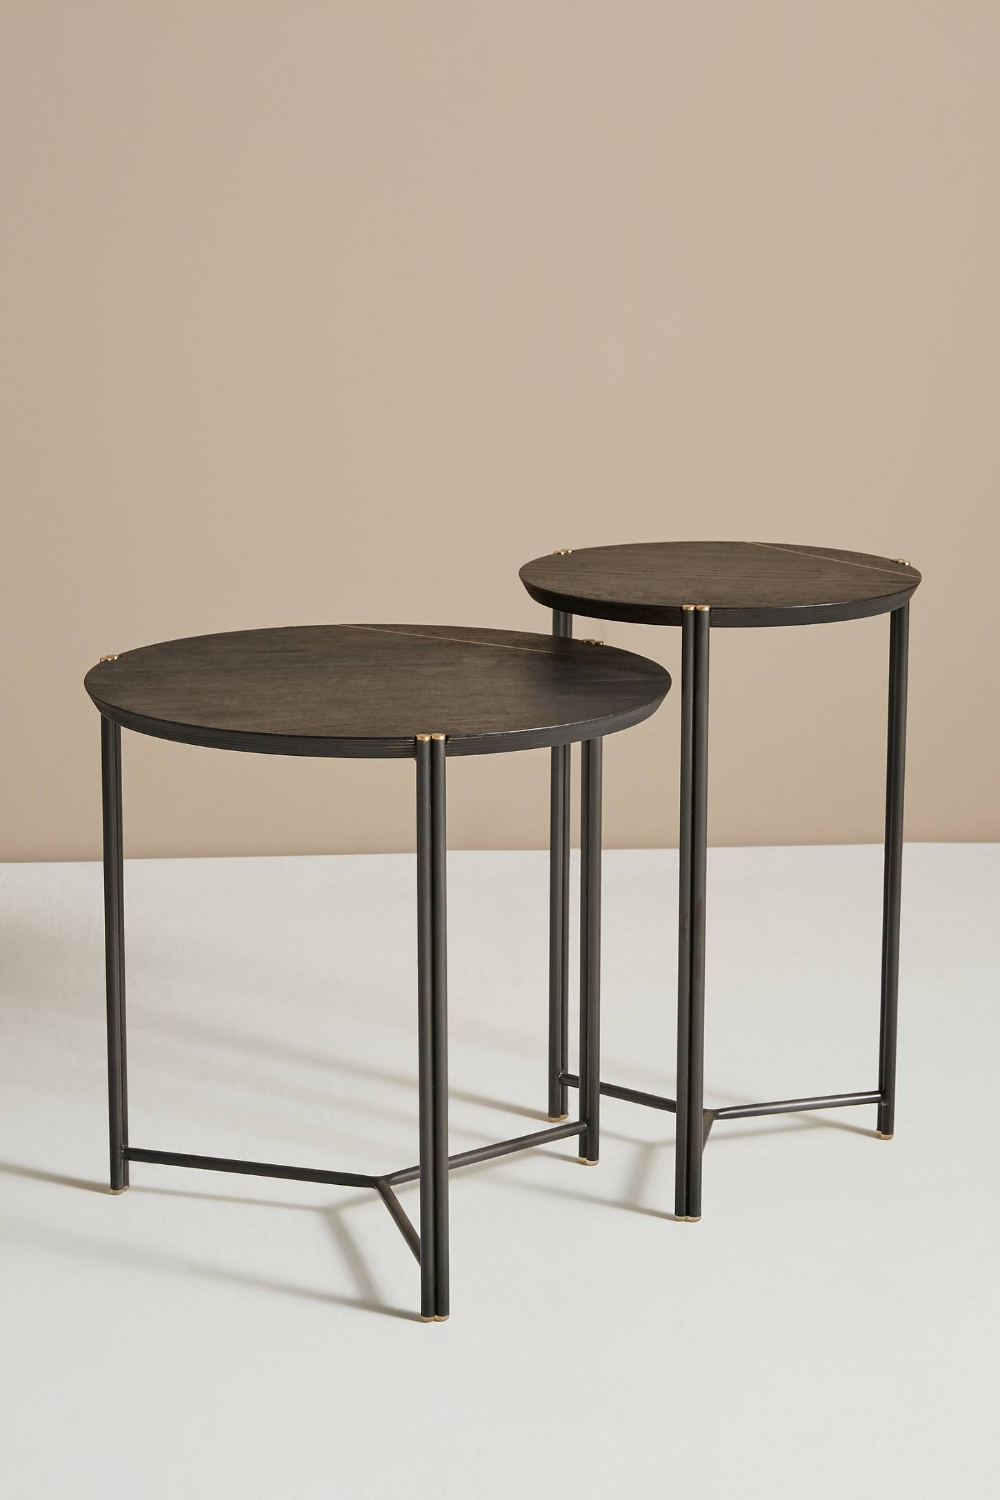 Nesting Side Table Side Table Coffee Table Side Table Wood [ 1500 x 1000 Pixel ]